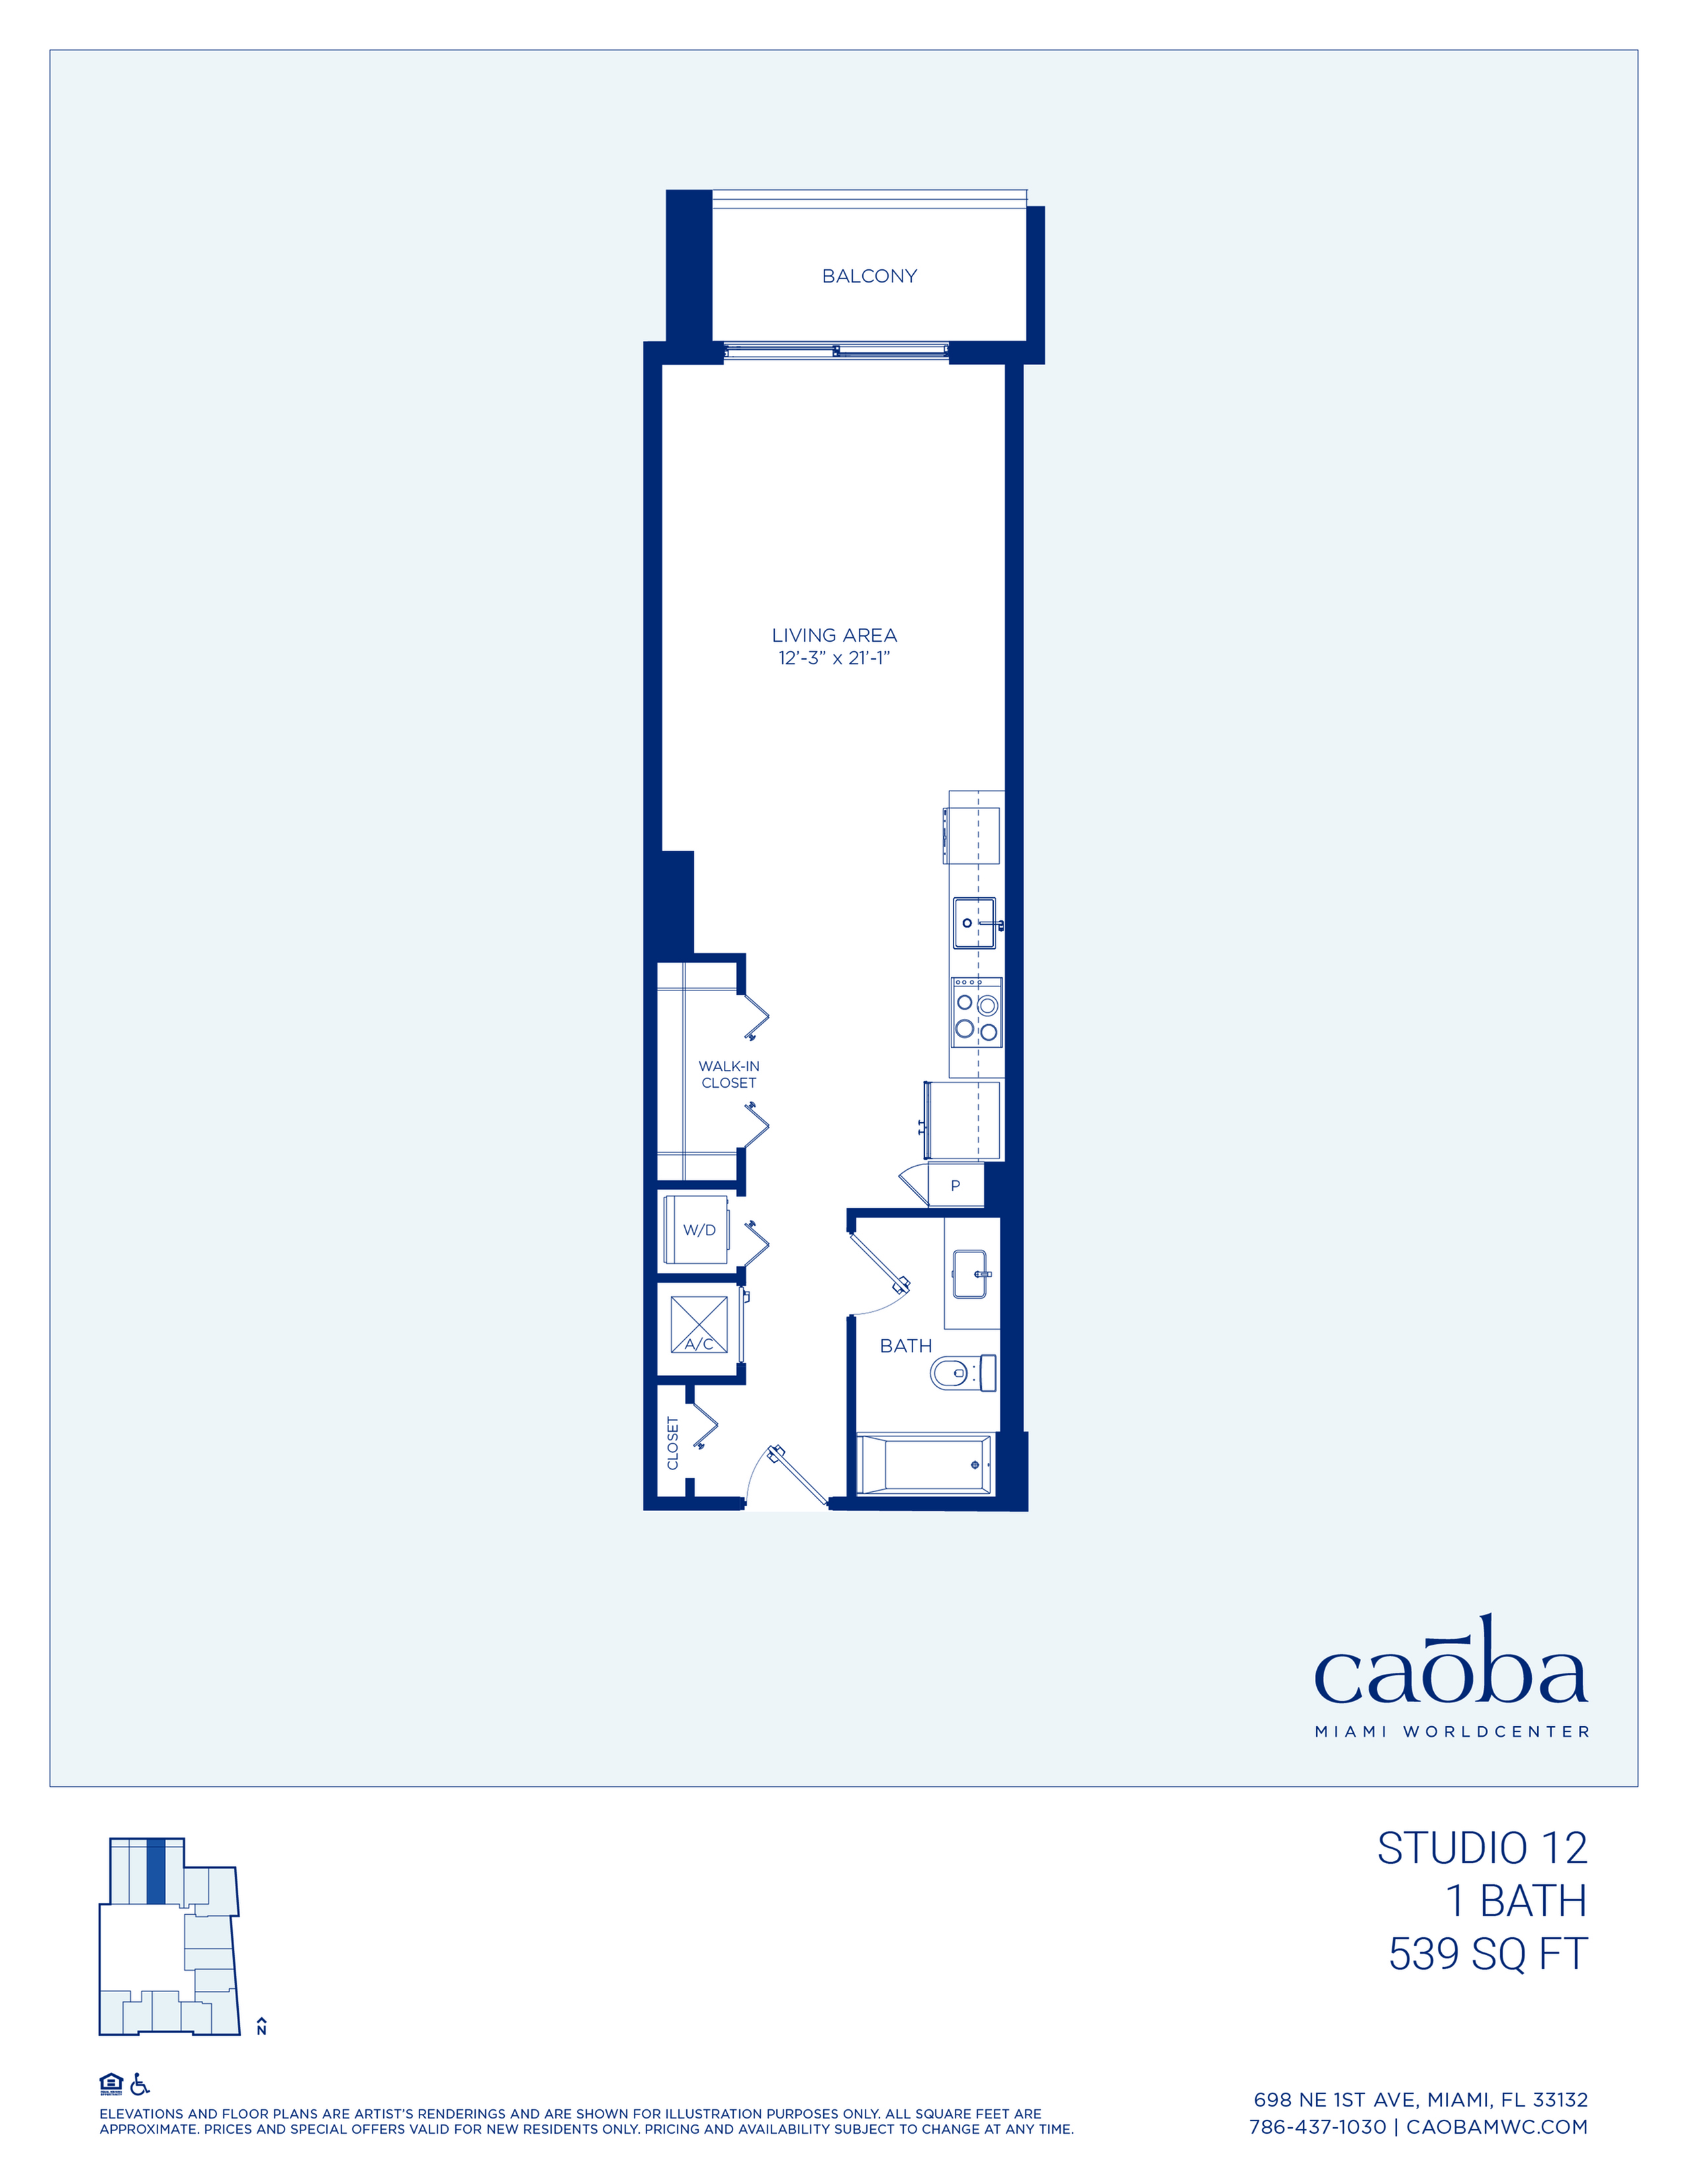 Miami Caoba Floorplan